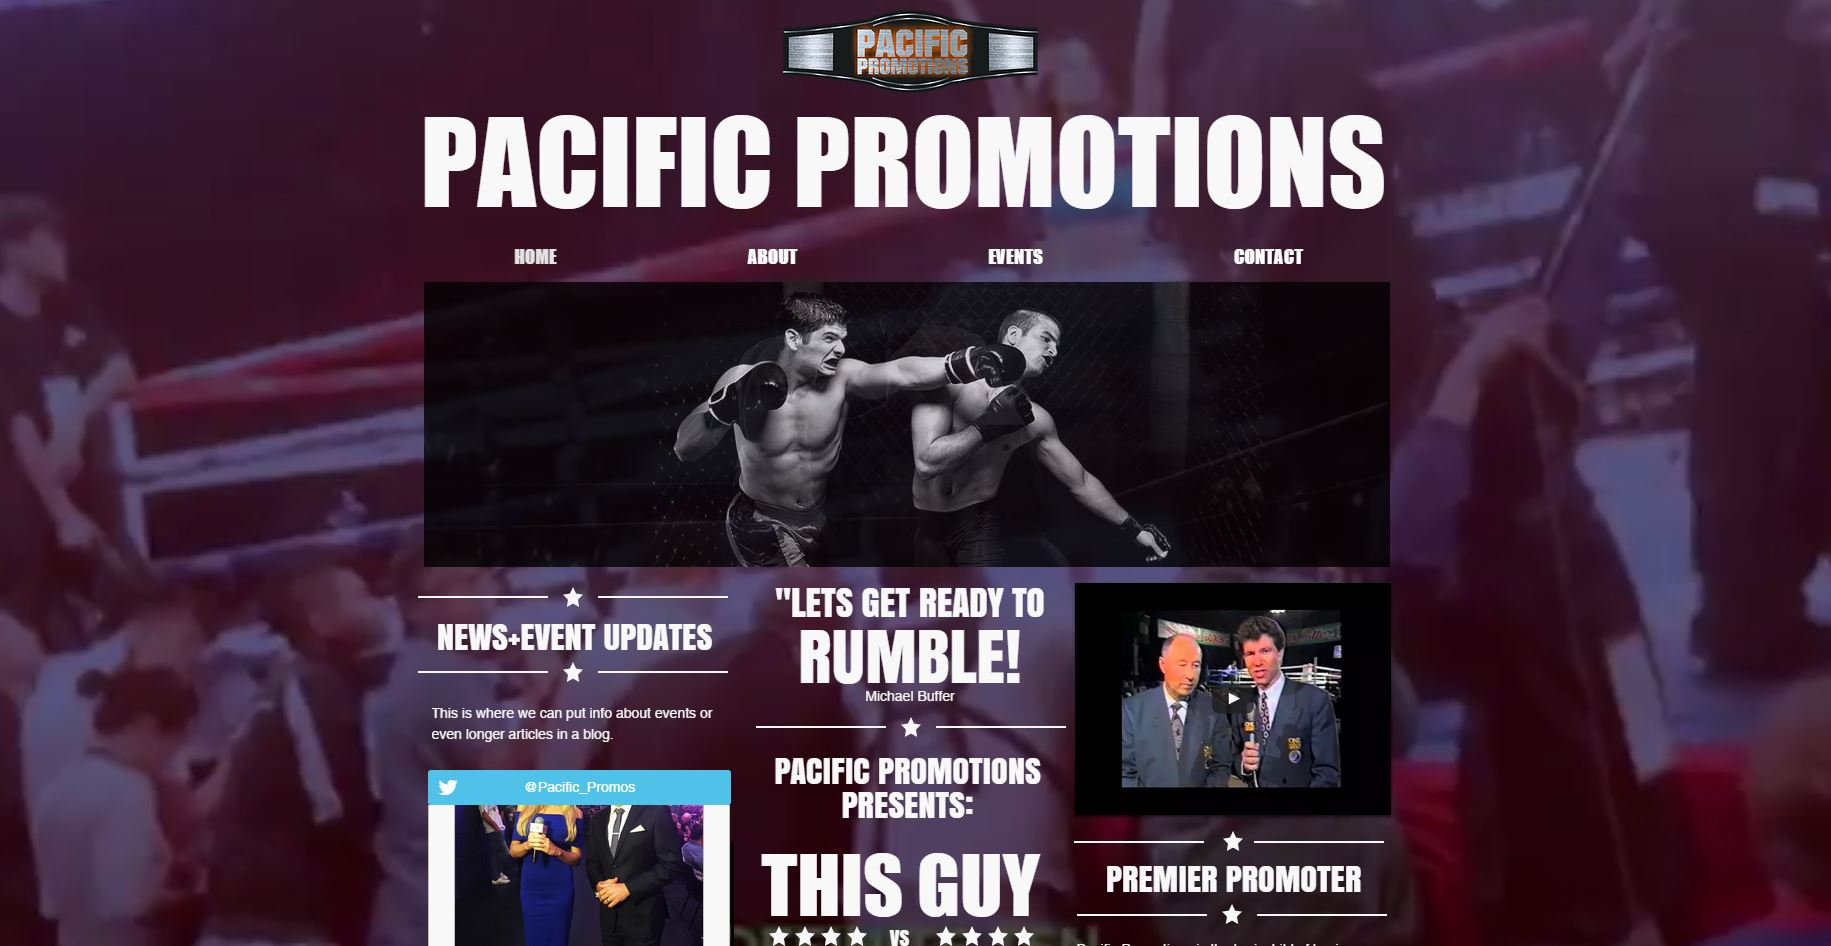 Pacific Promotions